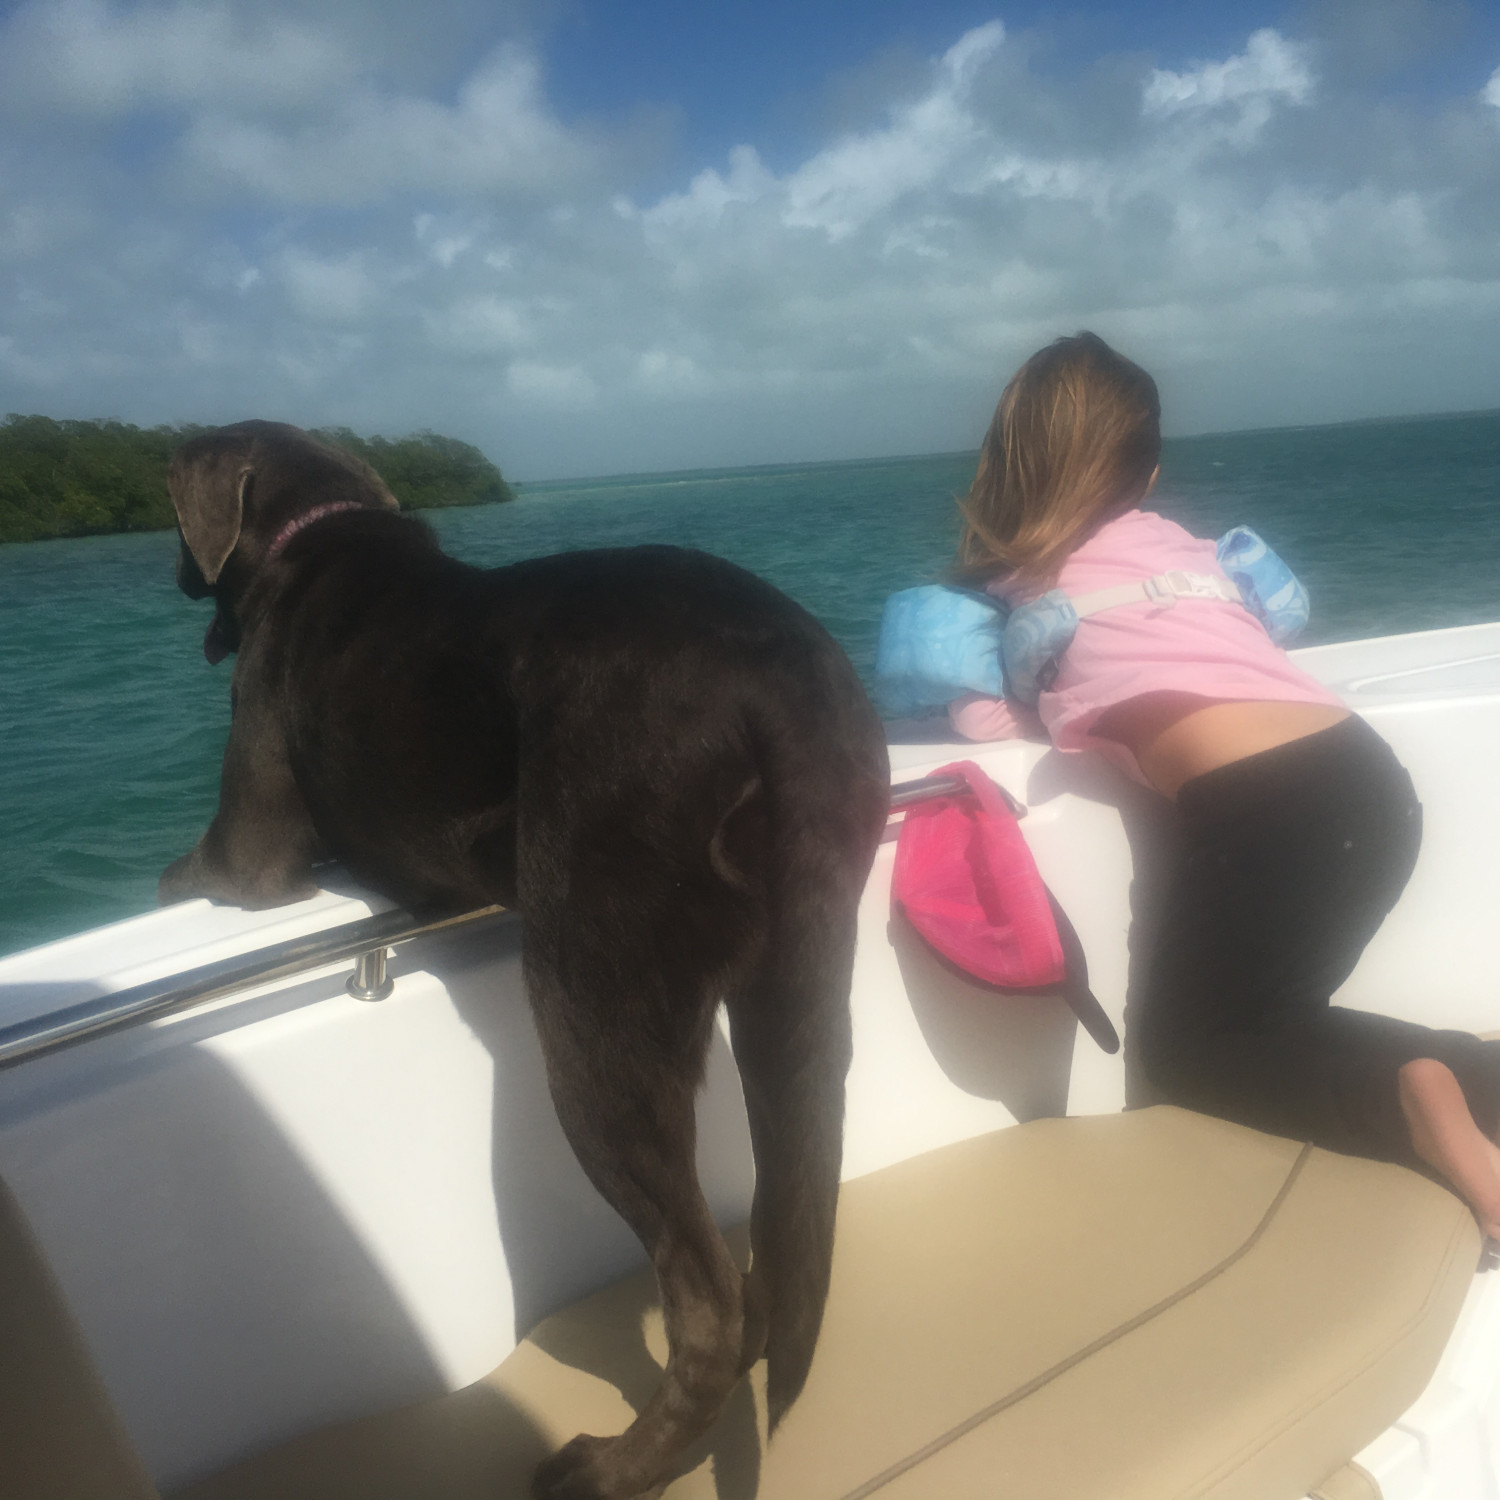 Title: Puppy butt - On board their Sportsman Open 232 Center Console - Location: Key west FL. Participating in the Photo Contest #SportsmanFebruary2018